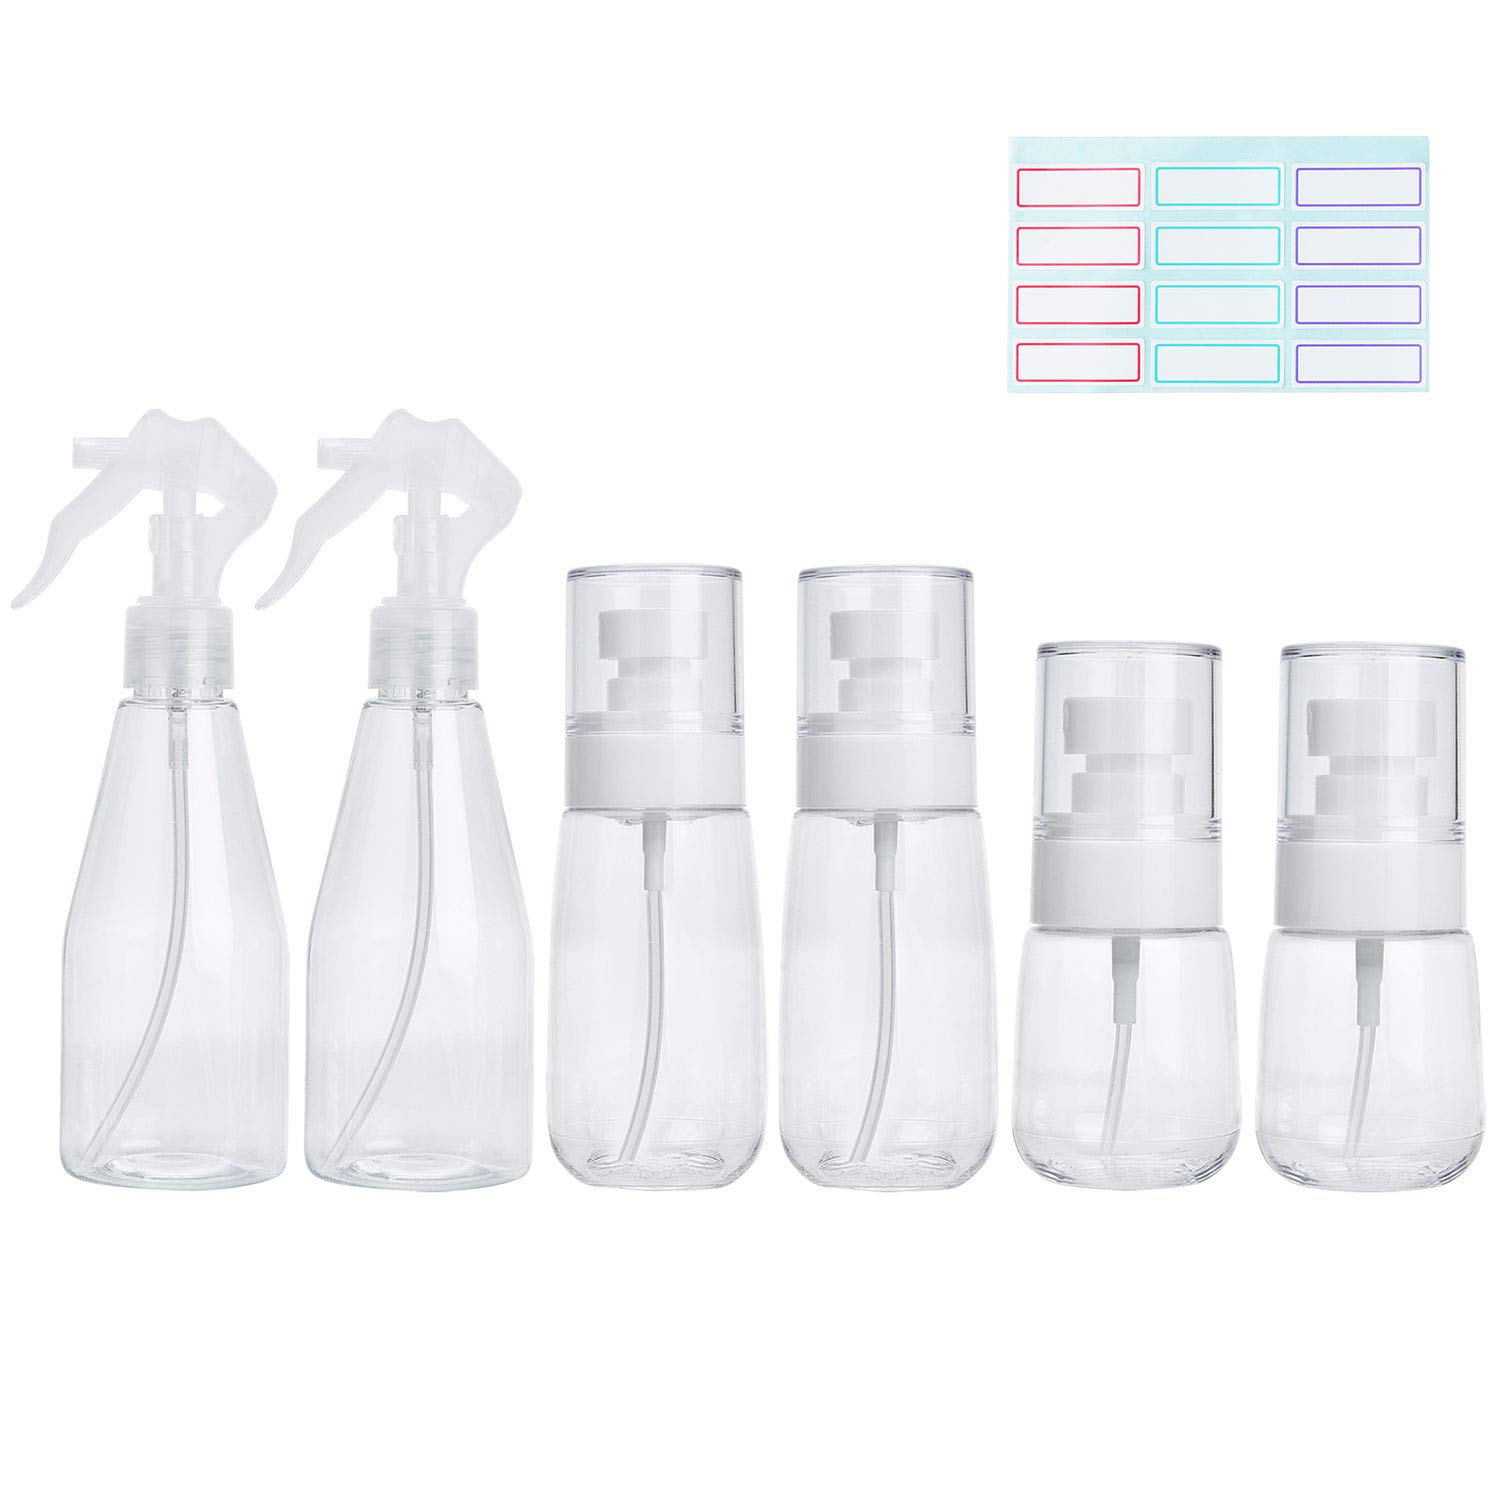 Empty Spray Bottle Set-Refillable Fine Mist Plastic Liquid Containers with 16 pcs Labels, for puting Cleaning Products/Skin Care Products. Different capacity is Great for Travel/outdoor/Resume work.